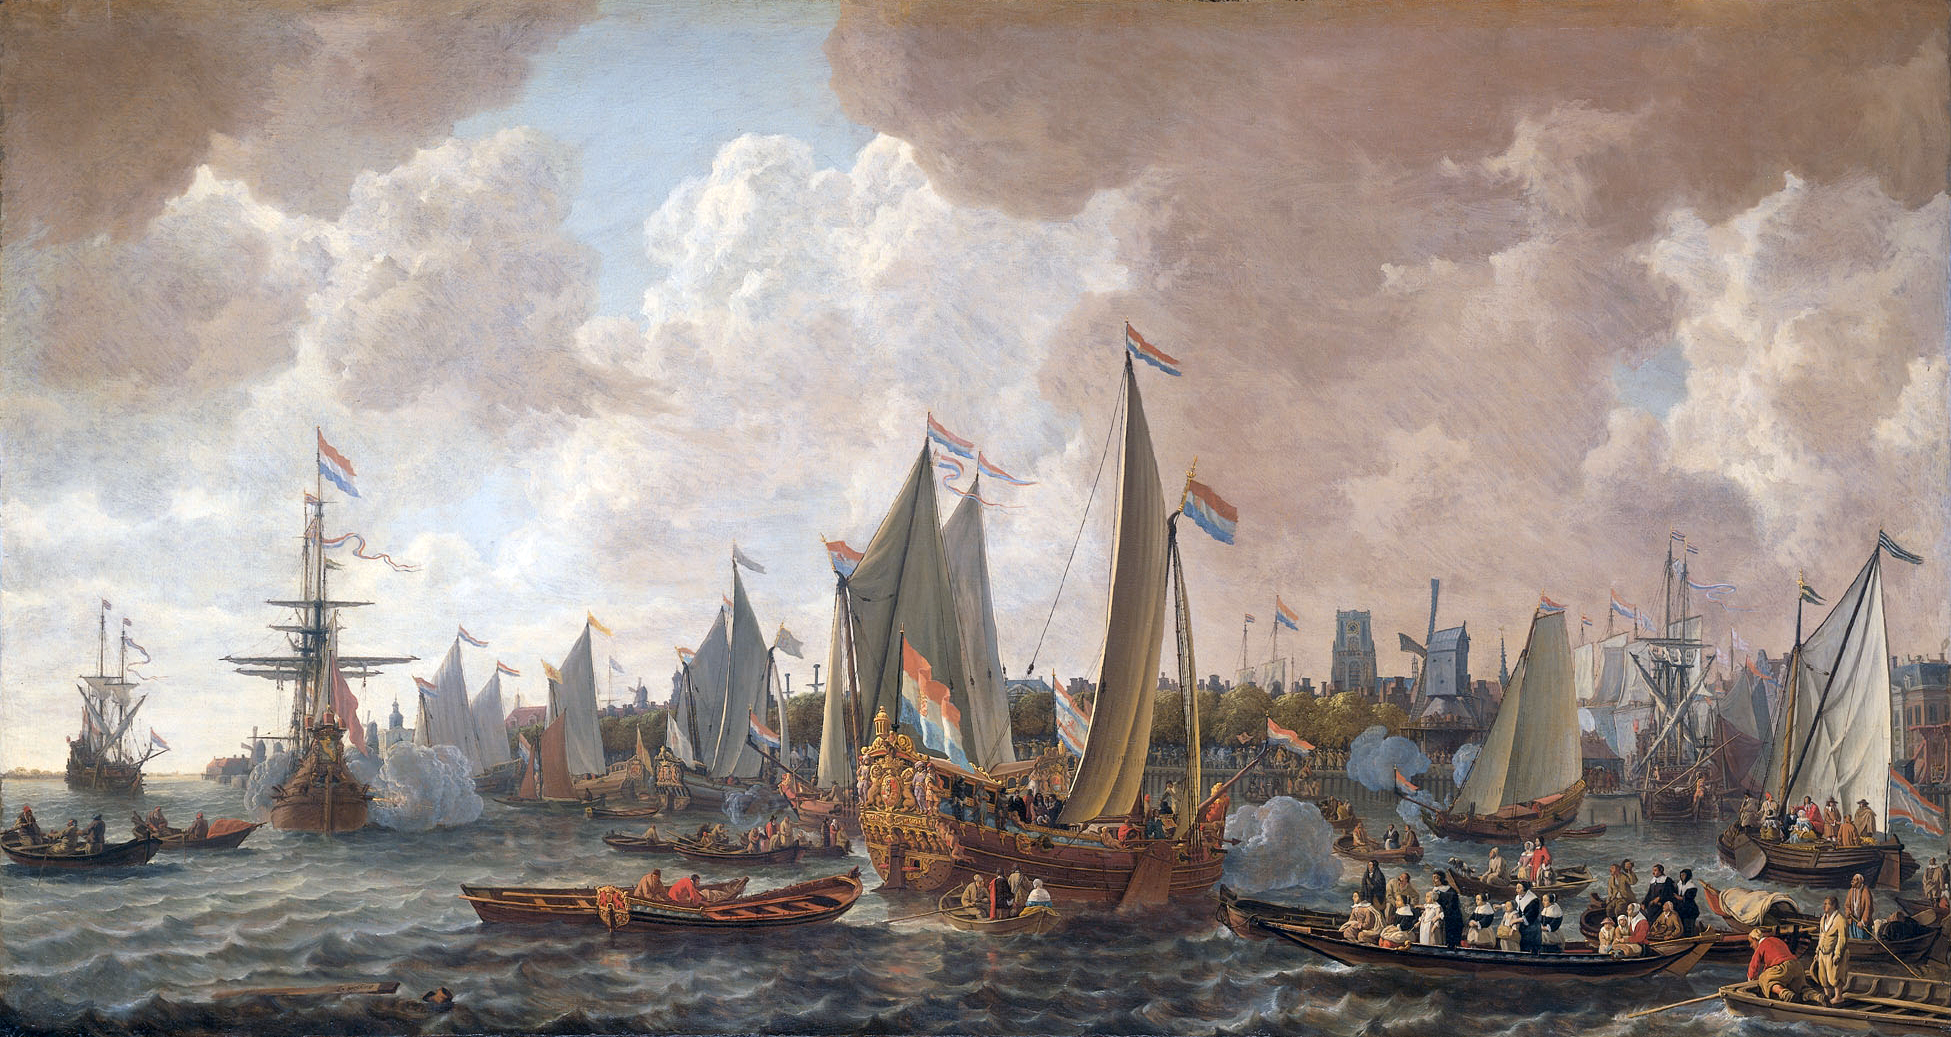 File:The arrival of King Charles II of England in Rotterdam, may 24 1660